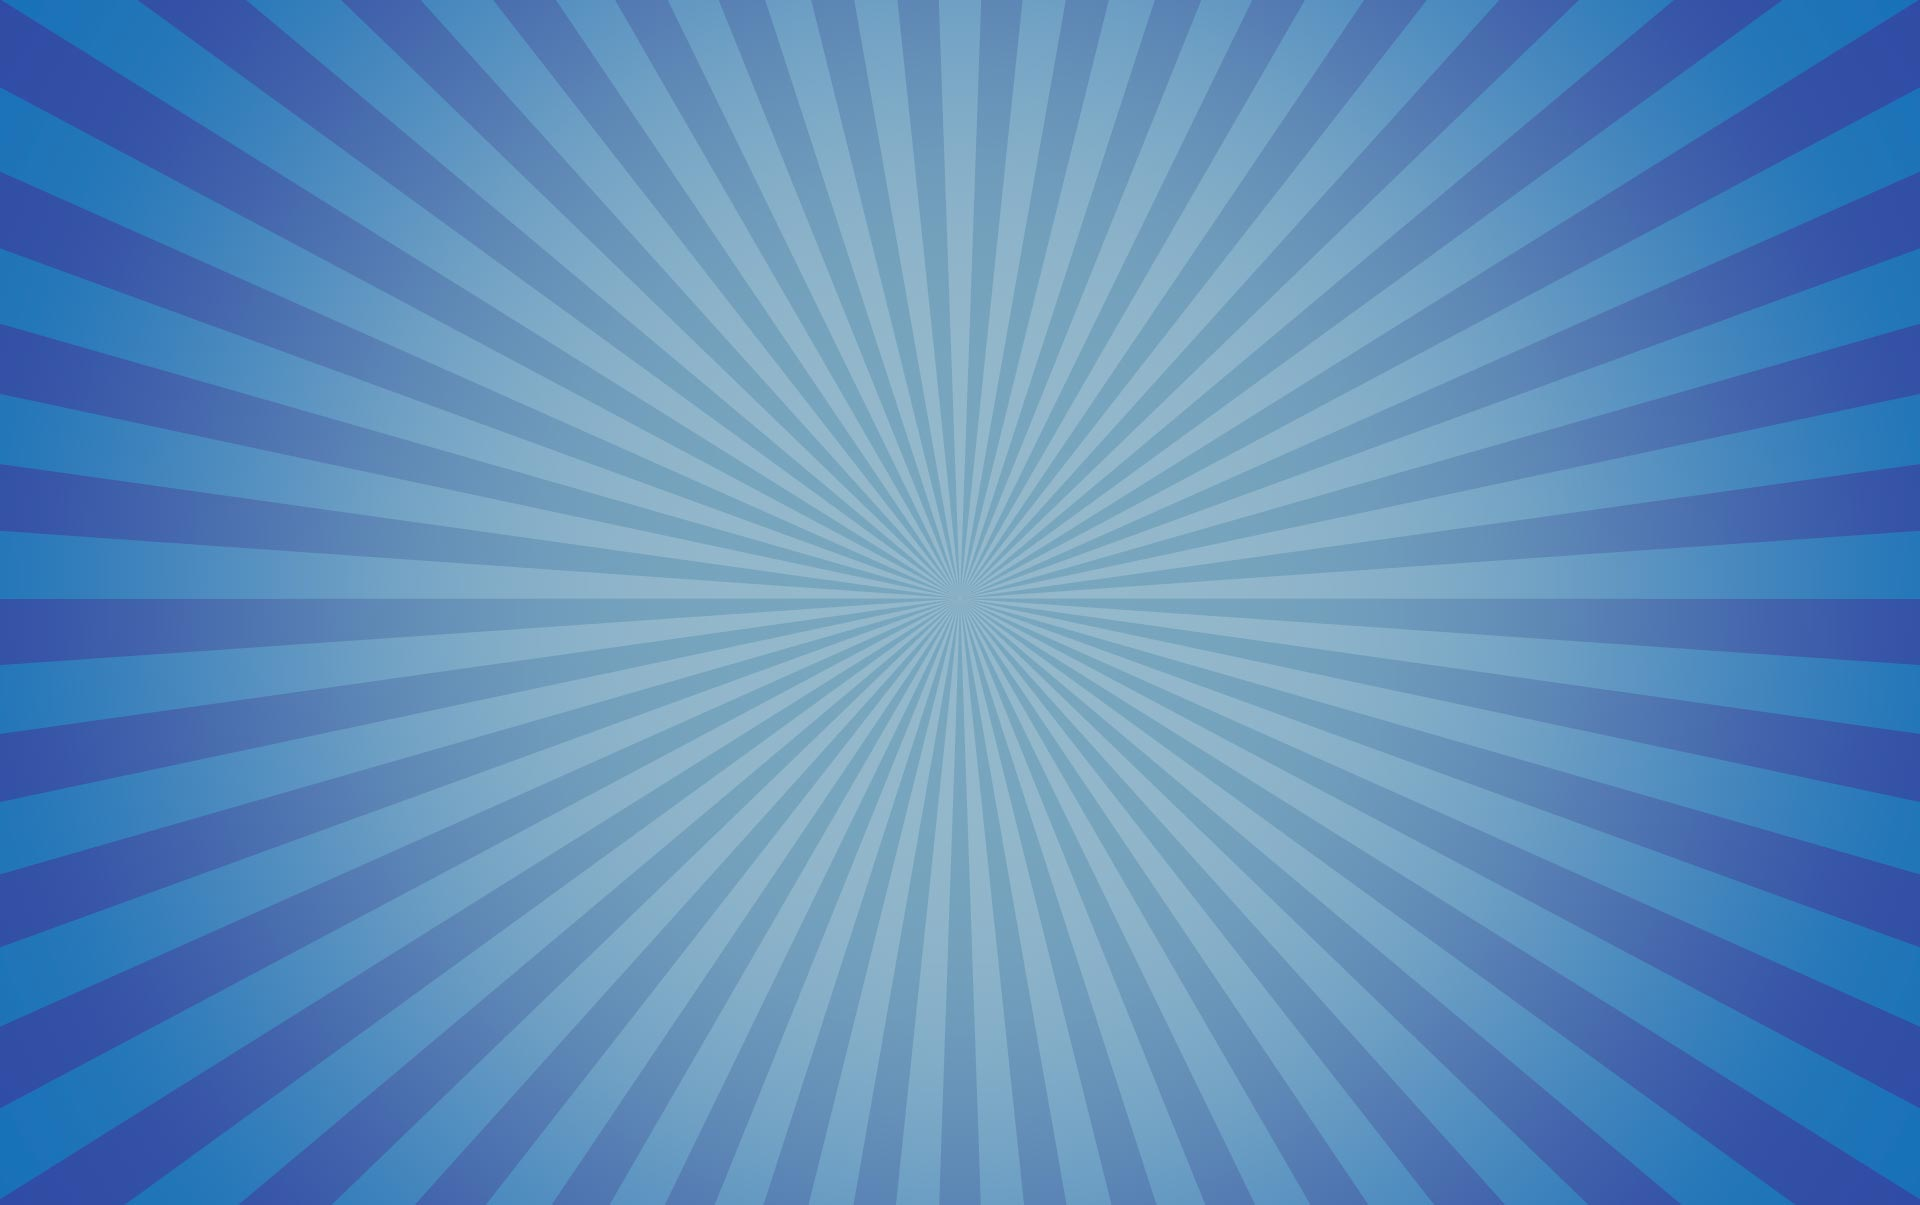 MediaXtreme graphic design blue stripe background